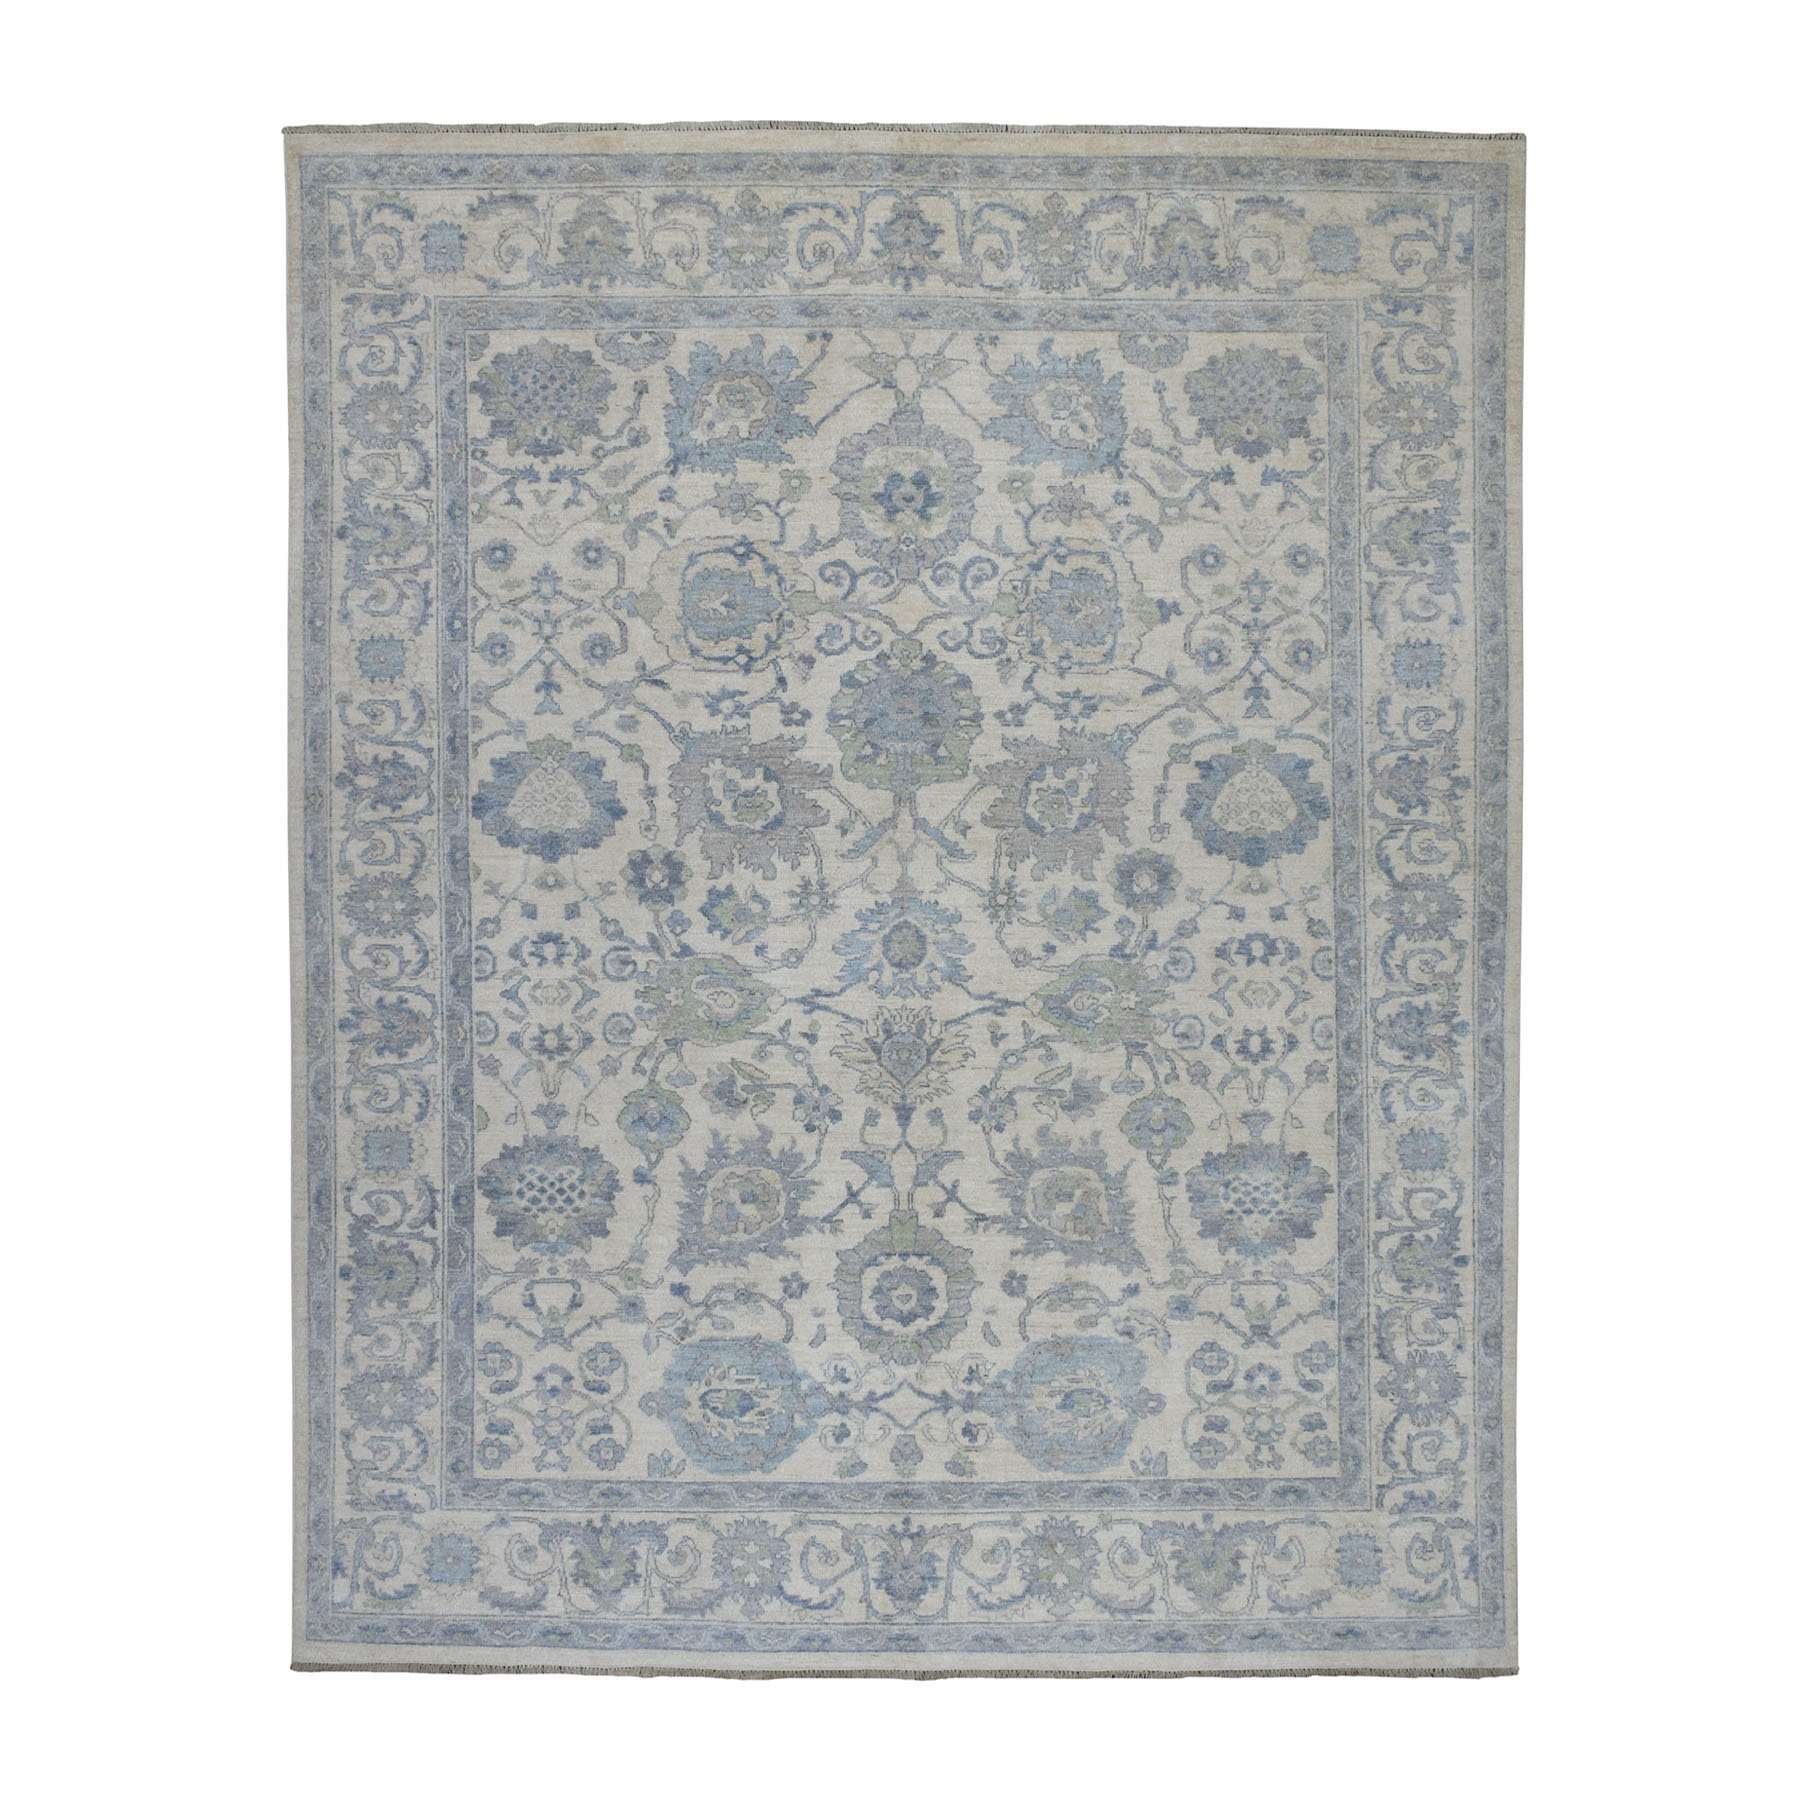 "8'X9'8"" White Wash Peshawar Pure Wool Hand Knotted Oriental Rug moaec9de"